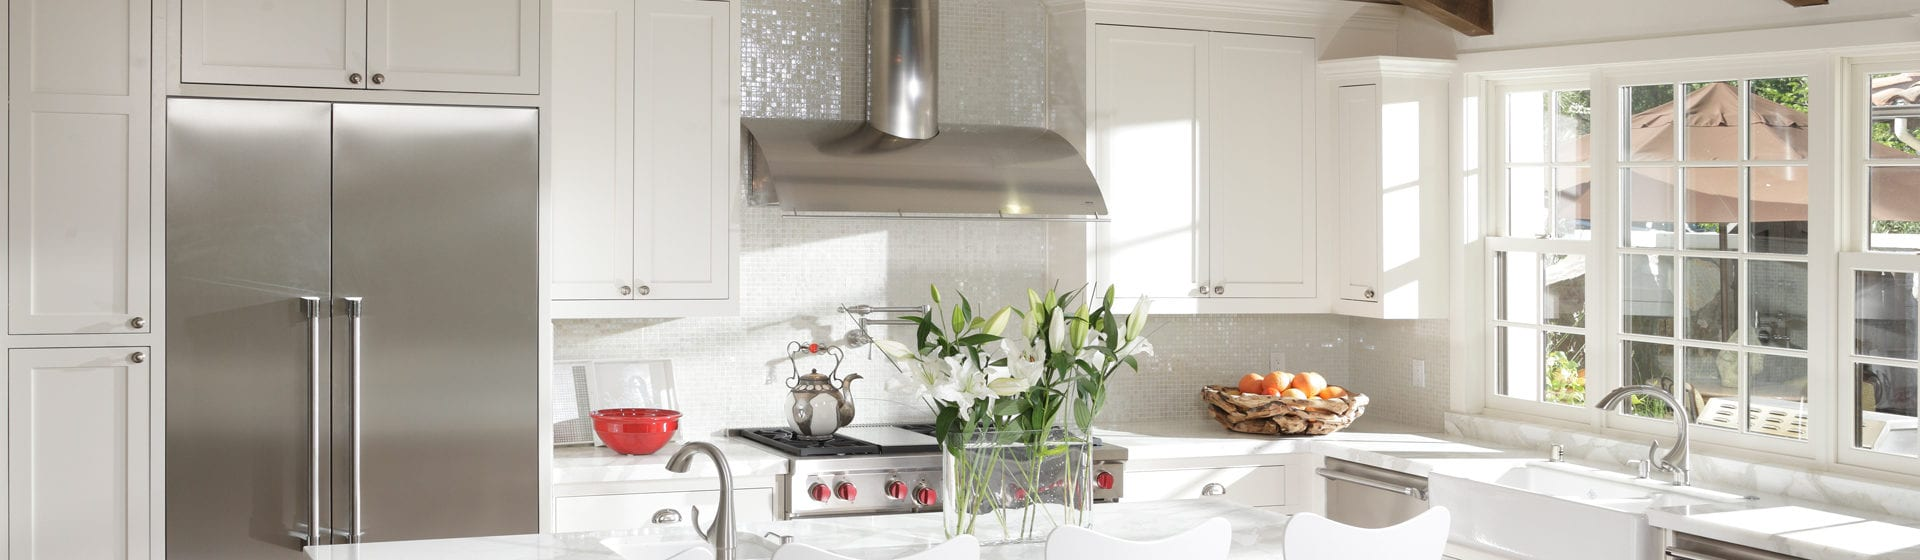 Range Hood Products Driven by Design and Innovation